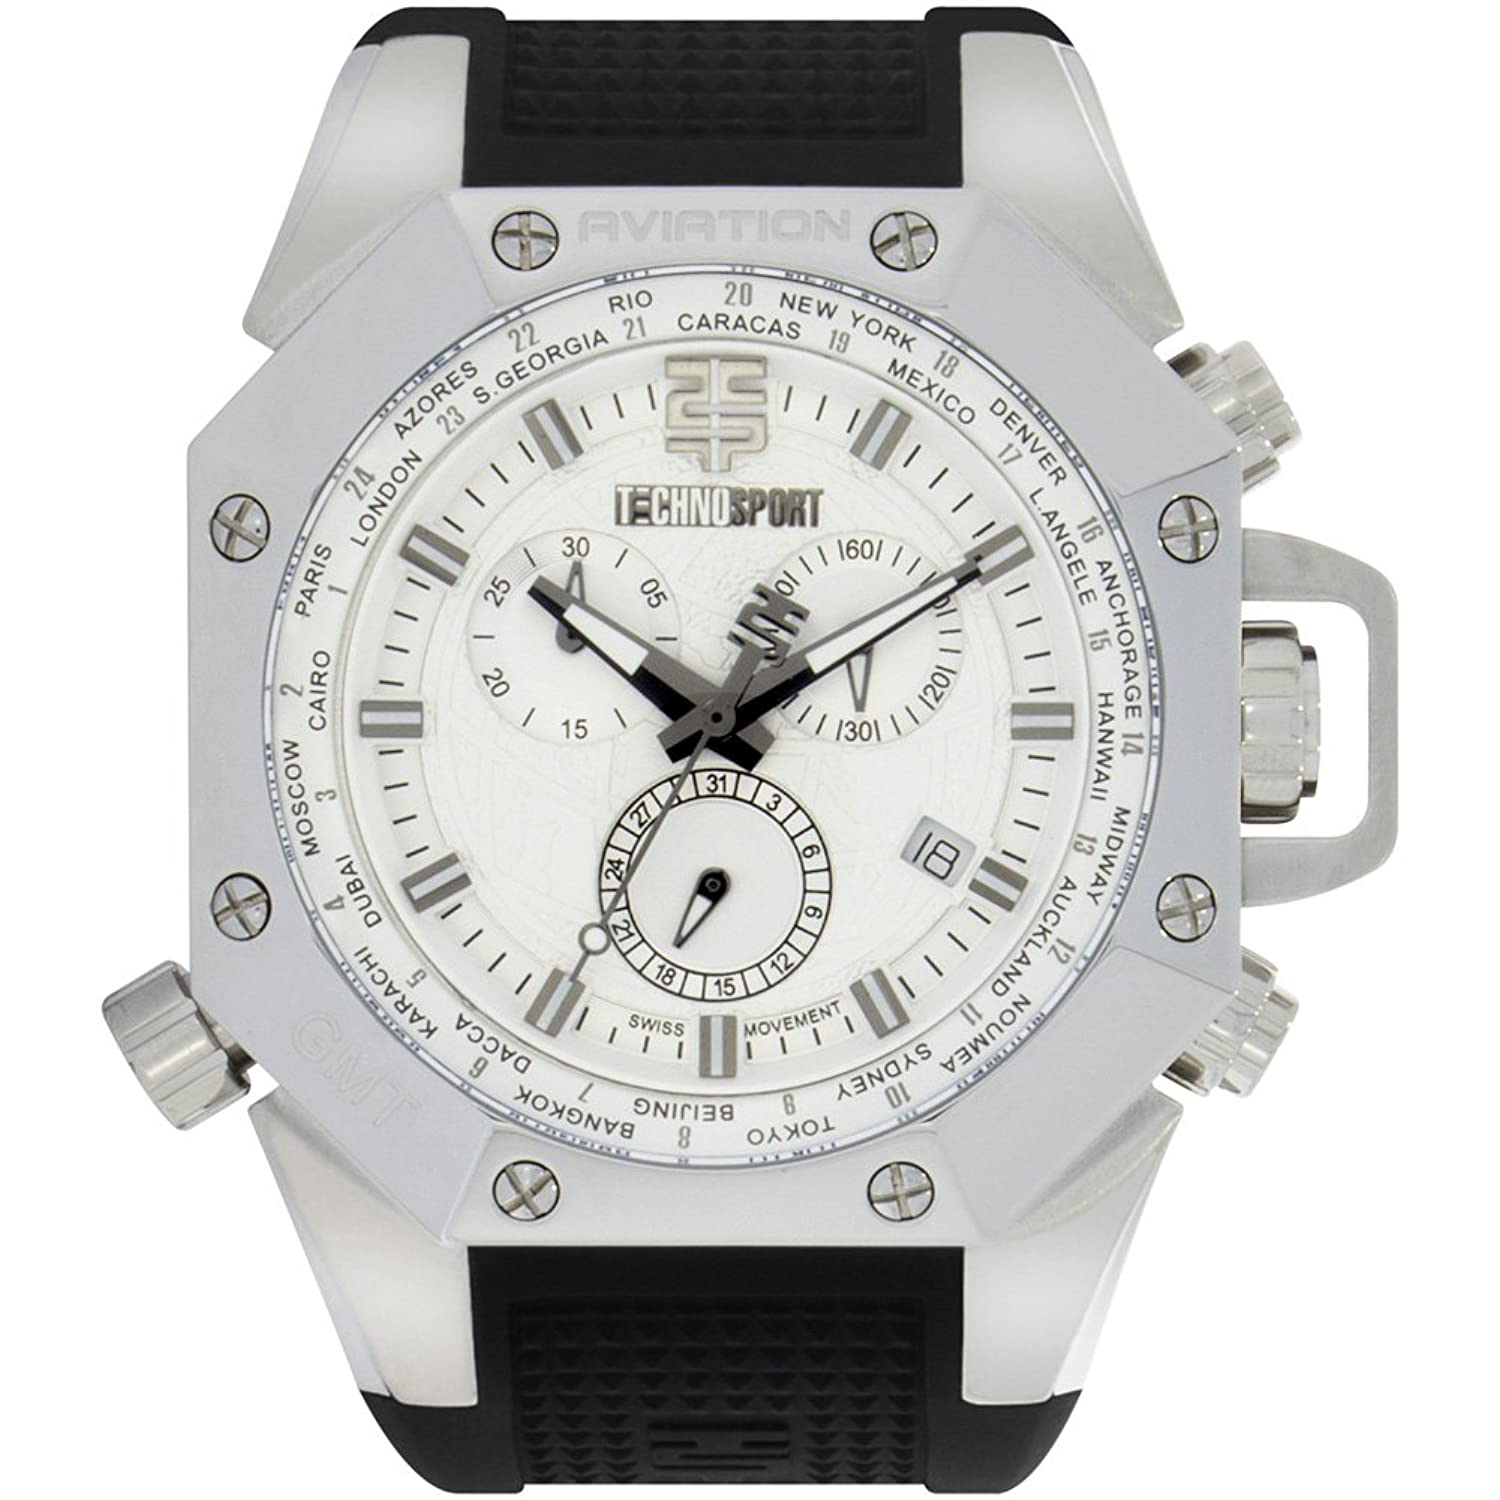 TechnoSport Herren Chrono Uhr - AVIATION silber